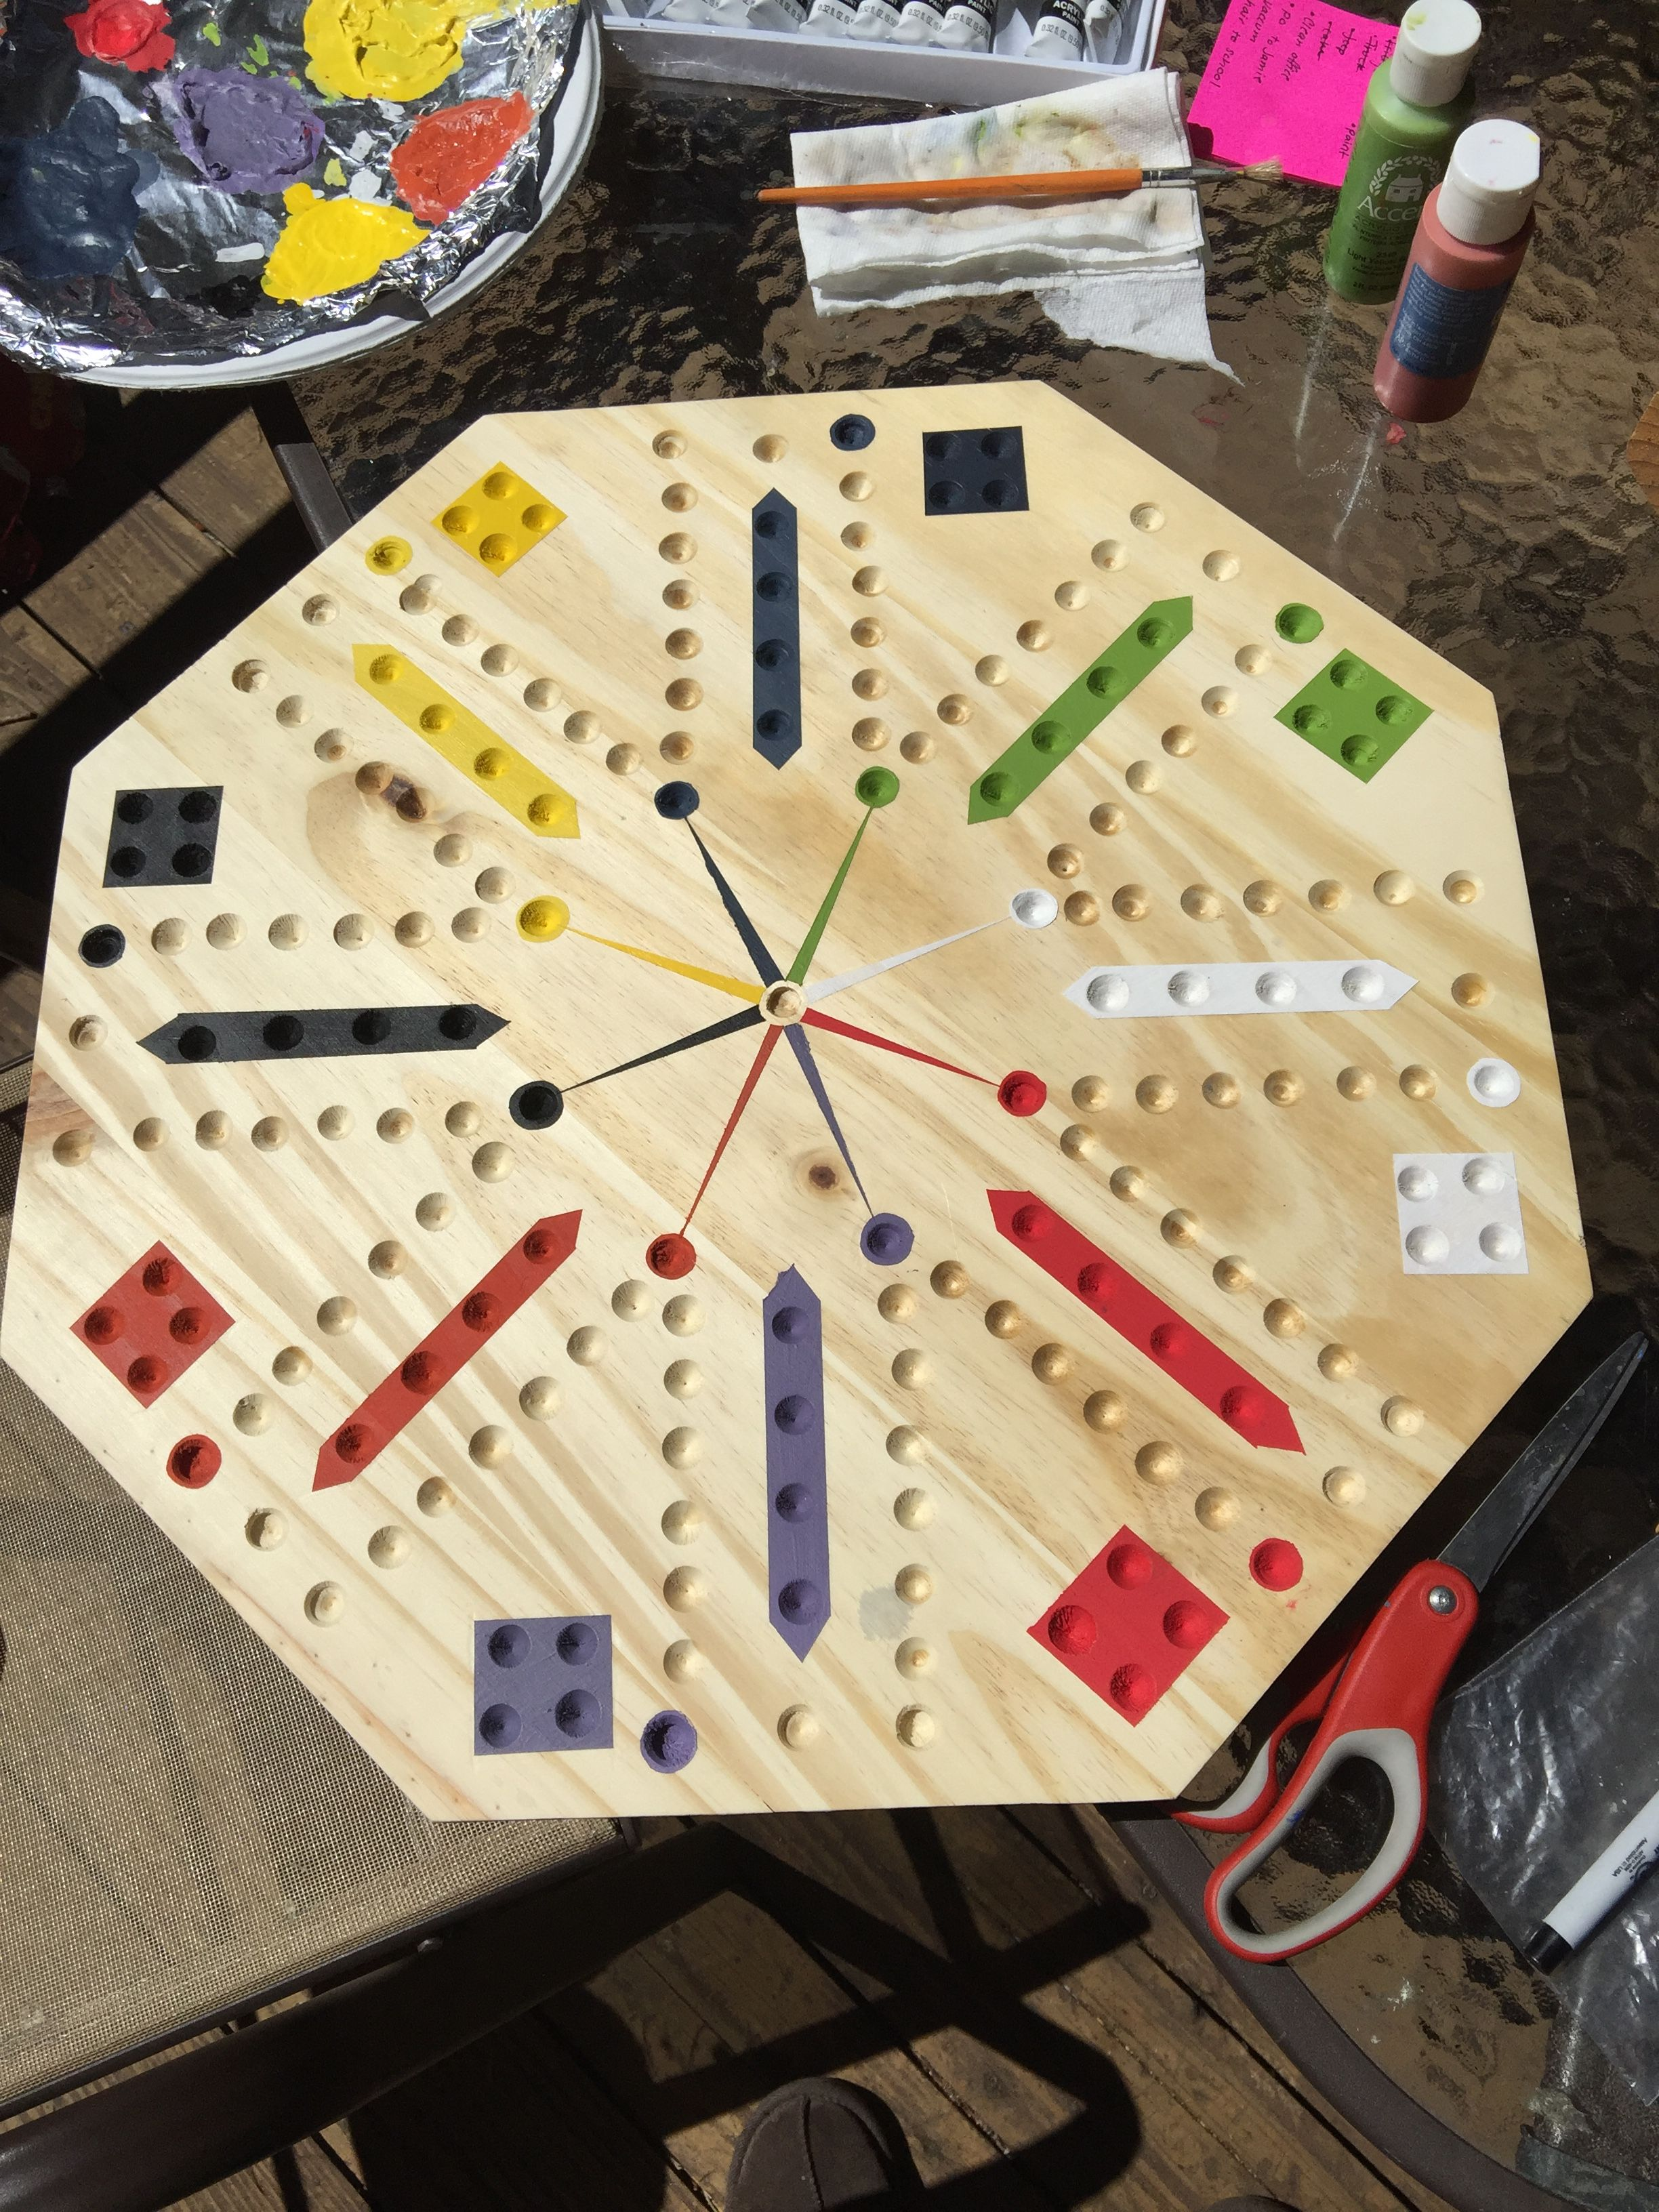 Diy Aggravation Board Homemade Marble Wooden Projects